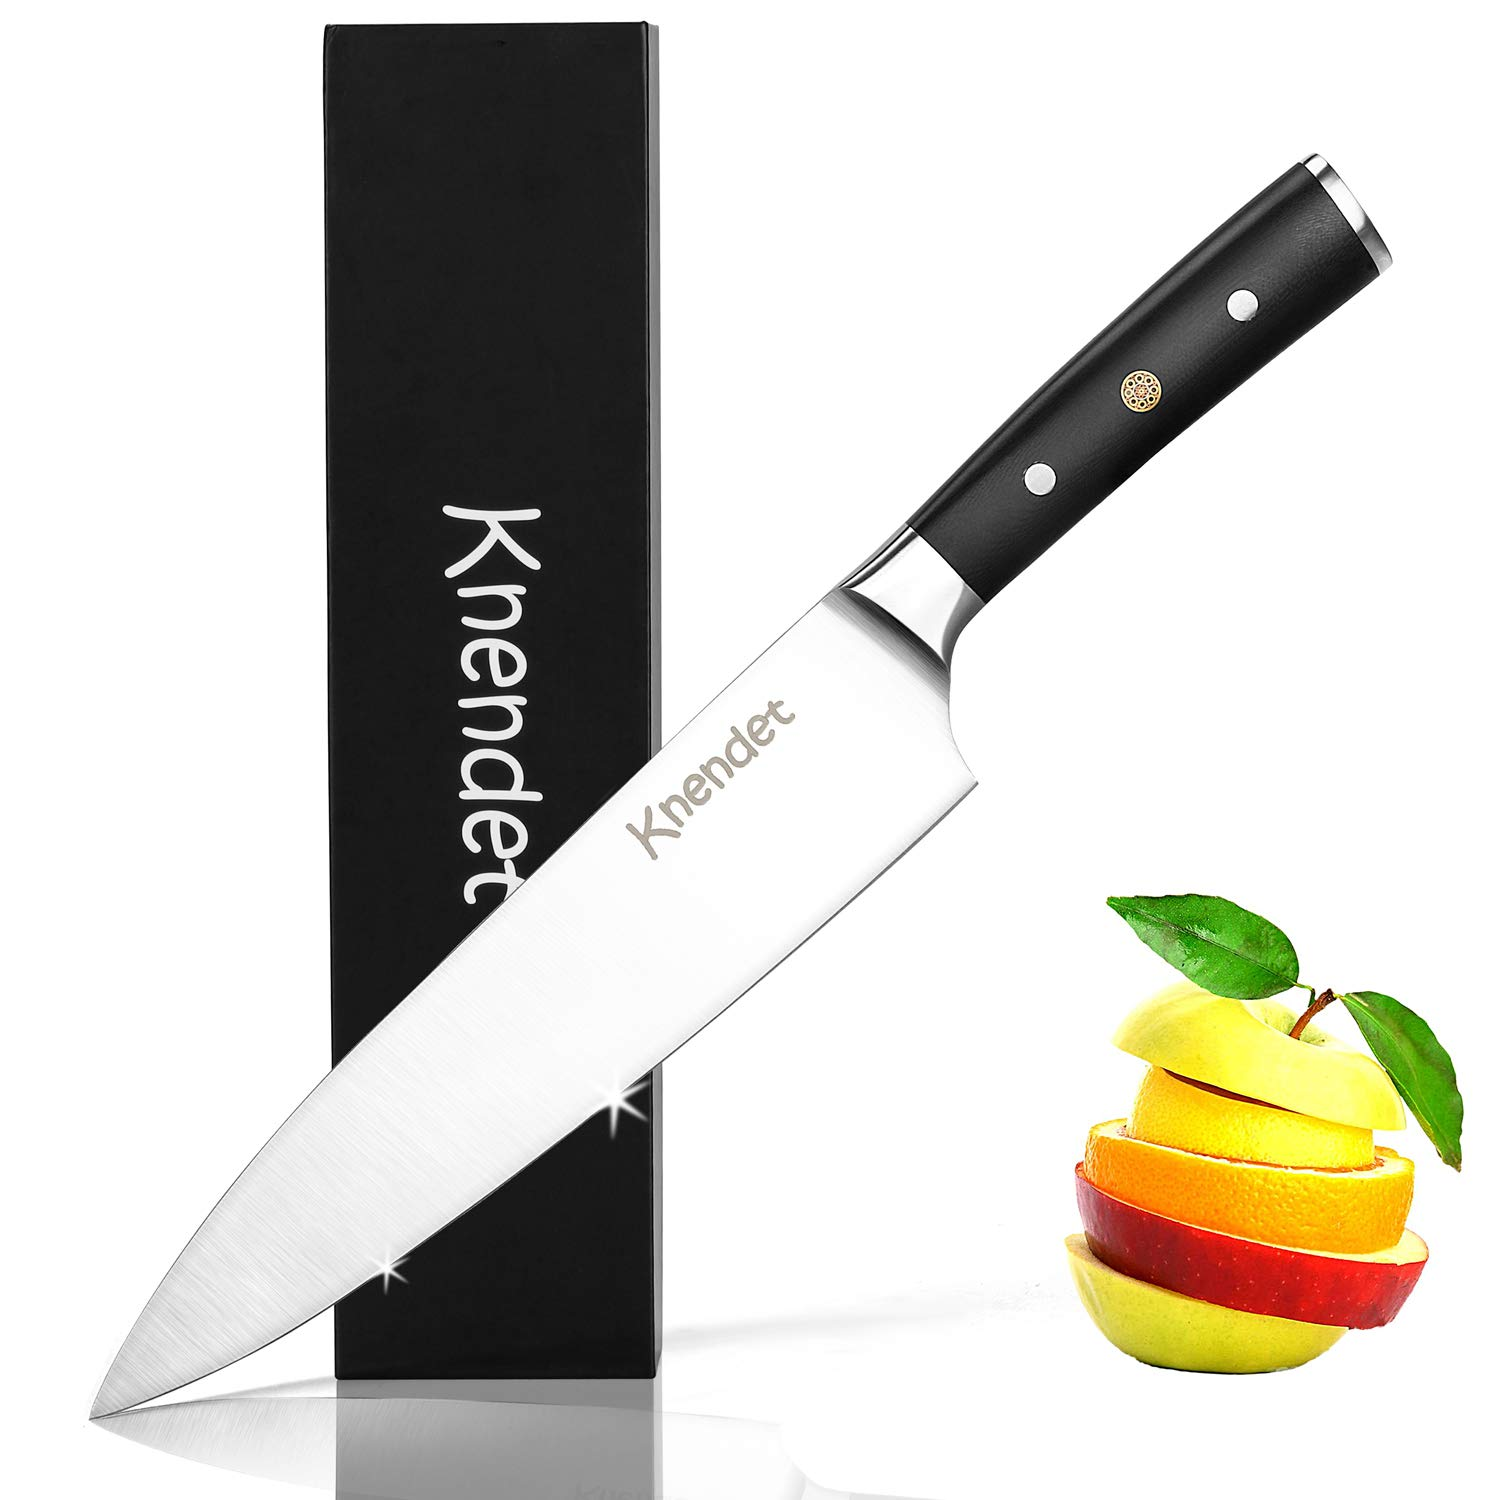 Chef Knife 8 inches Kitchen Knife ,Well Balanced and G10 Ergonomic Handle Cooks Knife - Vegetable Knife - Meat Knife - Fruit Knife with German High Carbon Stainless Steel,Ultra Sharp Professional Chef's Knives in Magnet Gift-Box Knendet